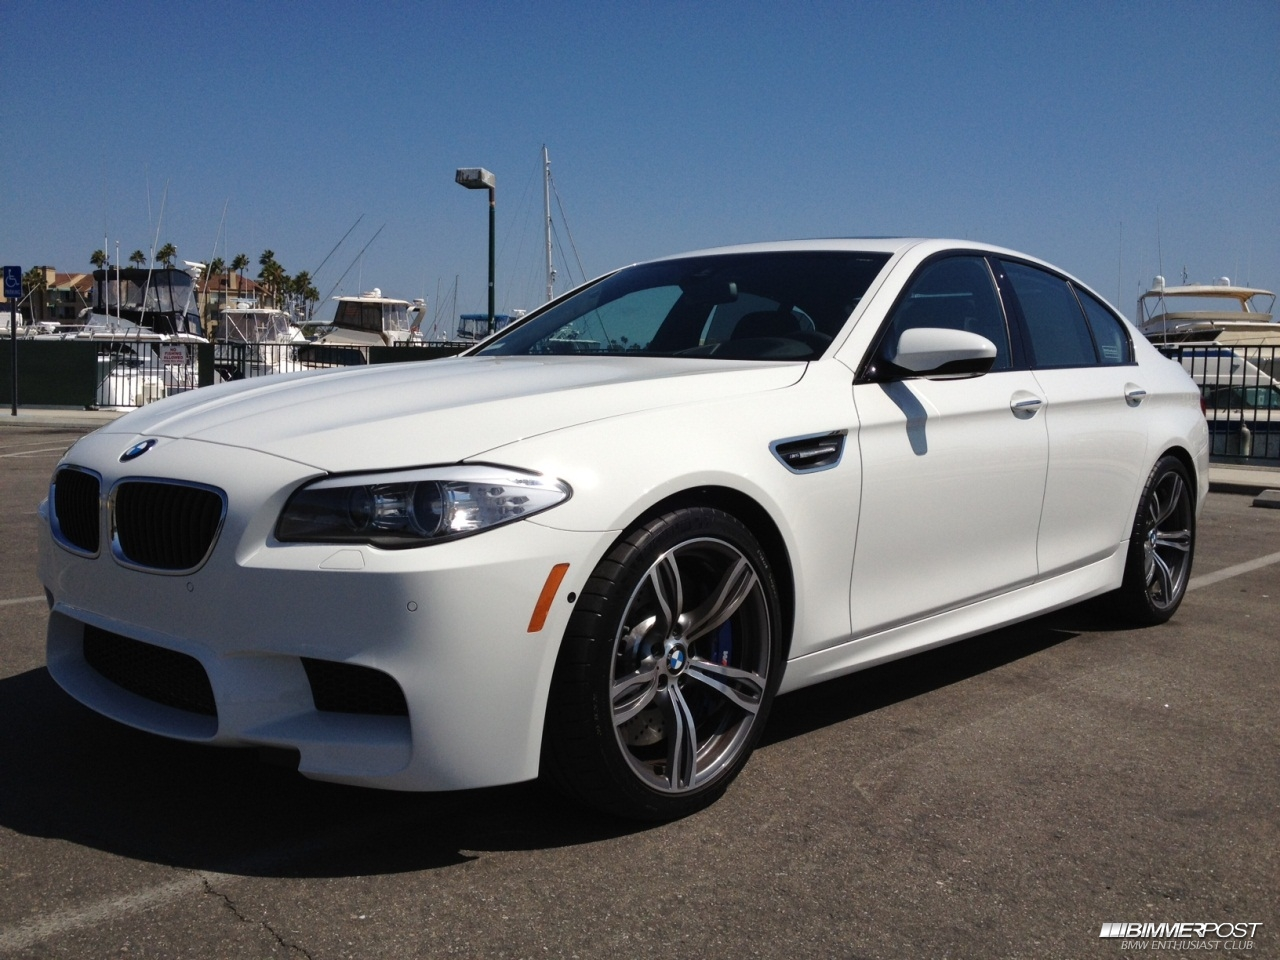 Pics For Gt Bmw M5 White With Black Rims 2013